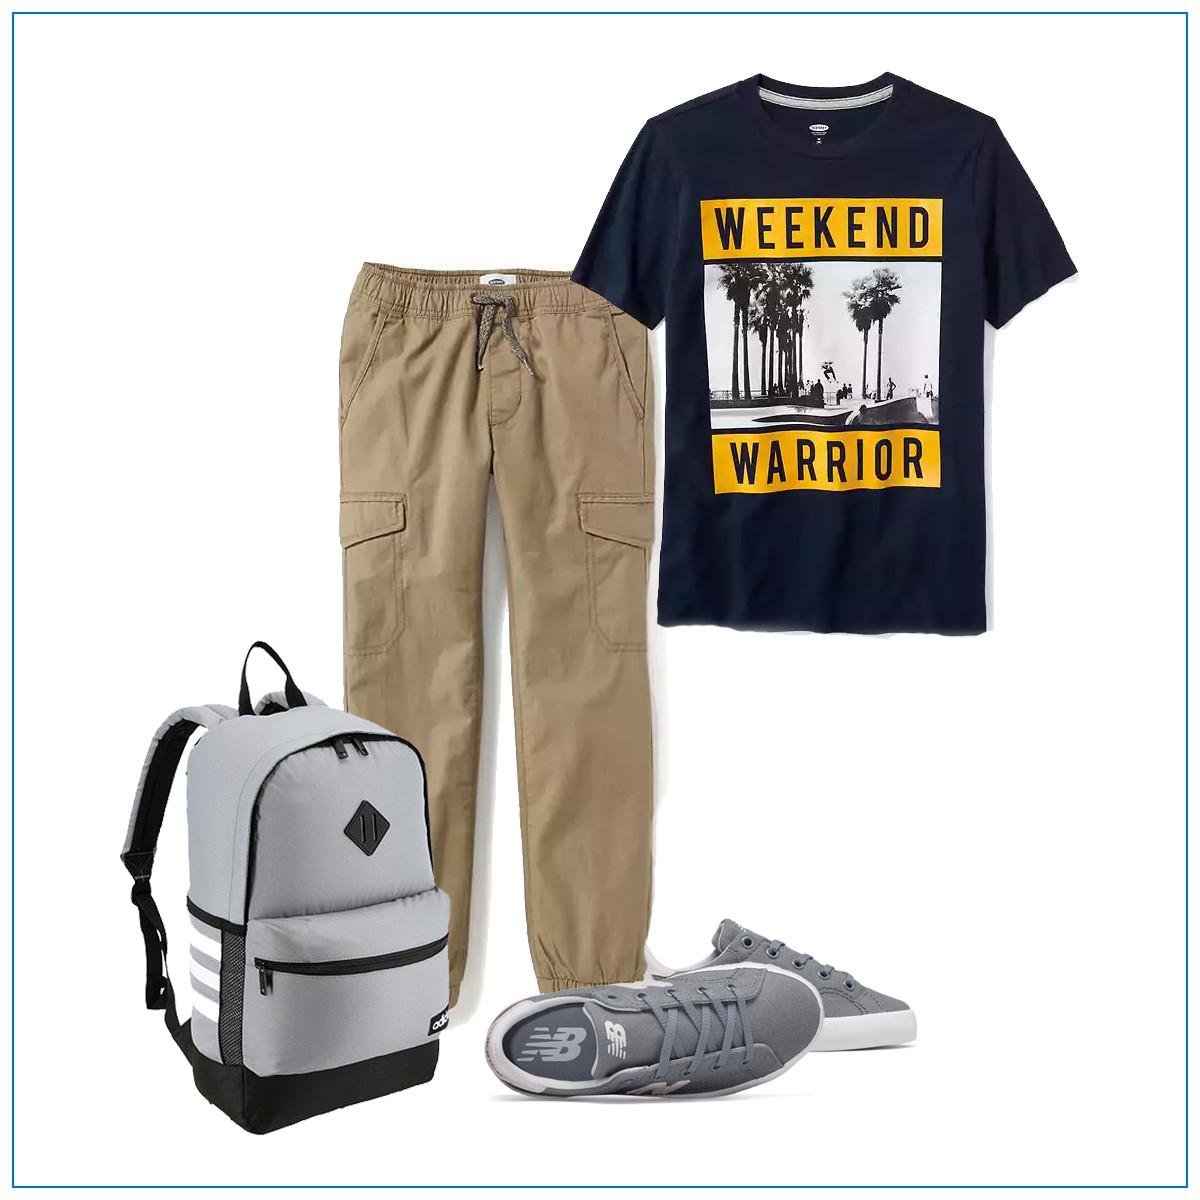 Jogger khakis with a graphic tee and sneakers